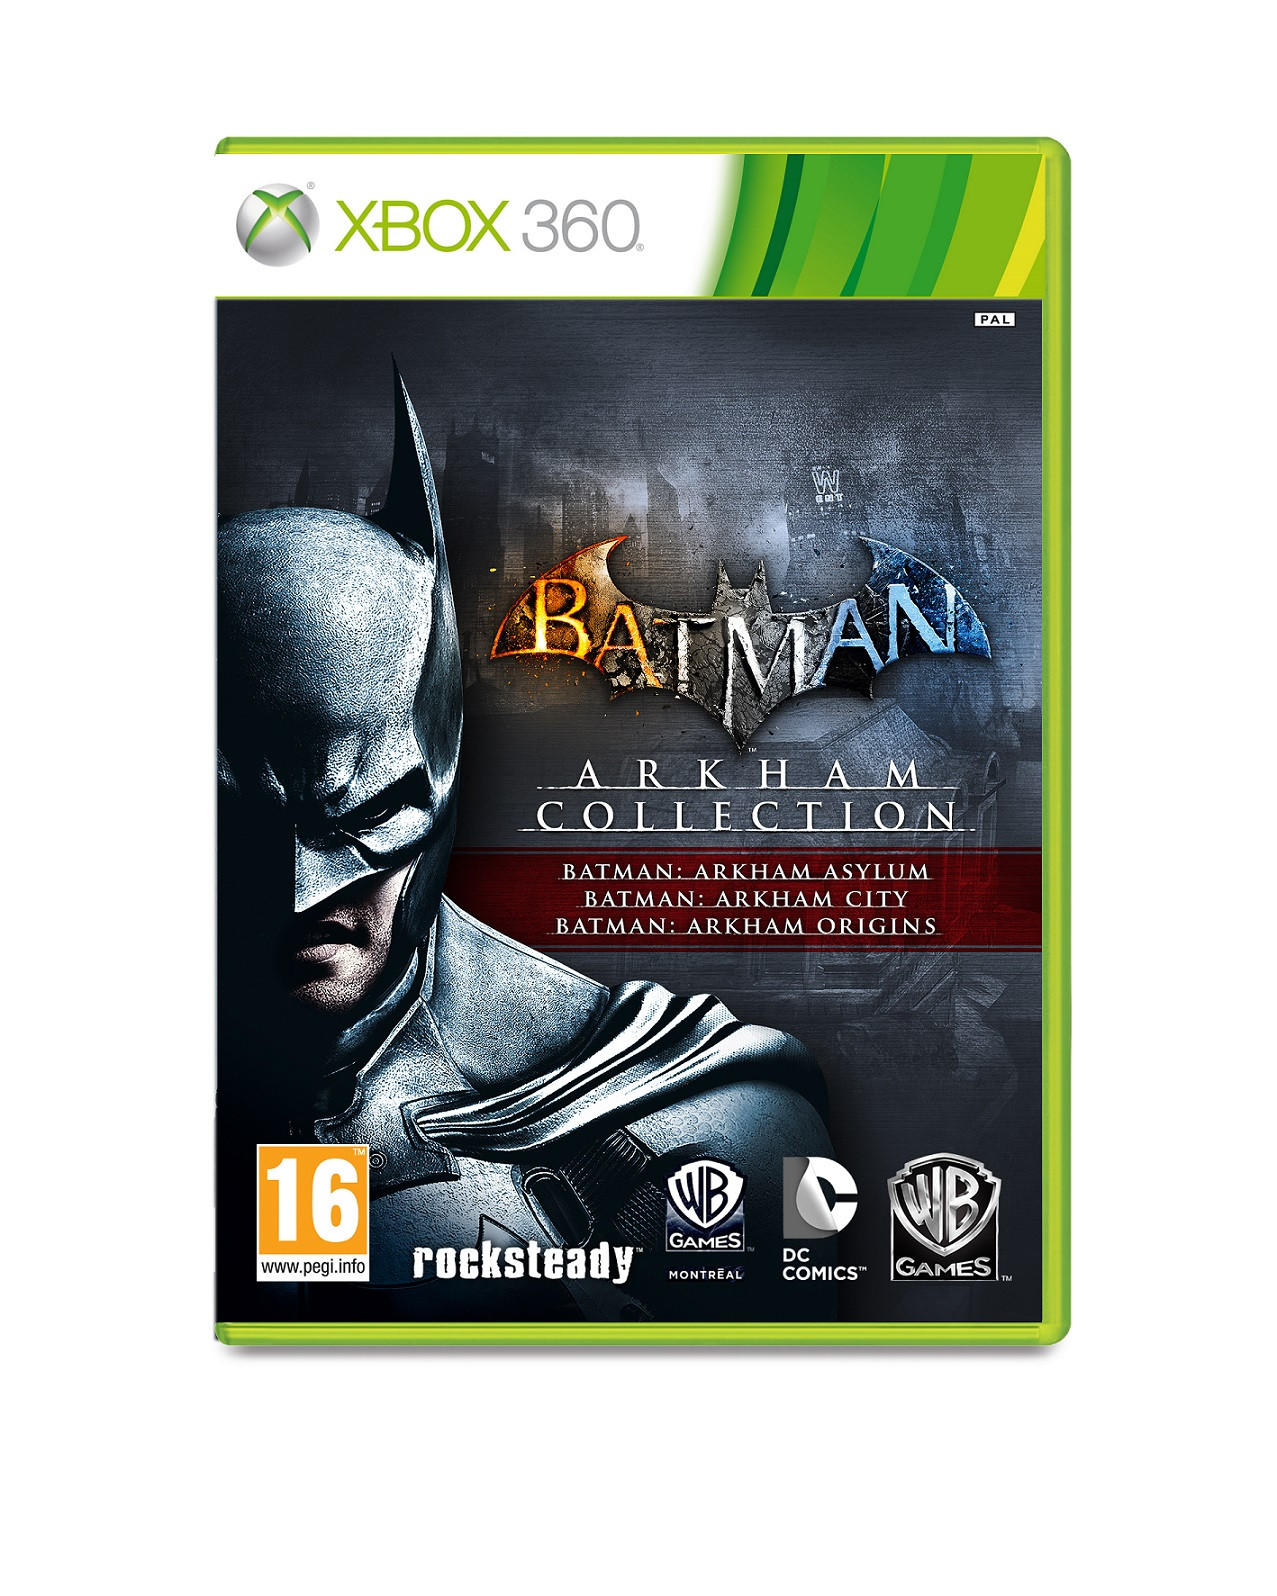 XBOX 360 Batman Arkham Collection (Assylum + City + Origins)